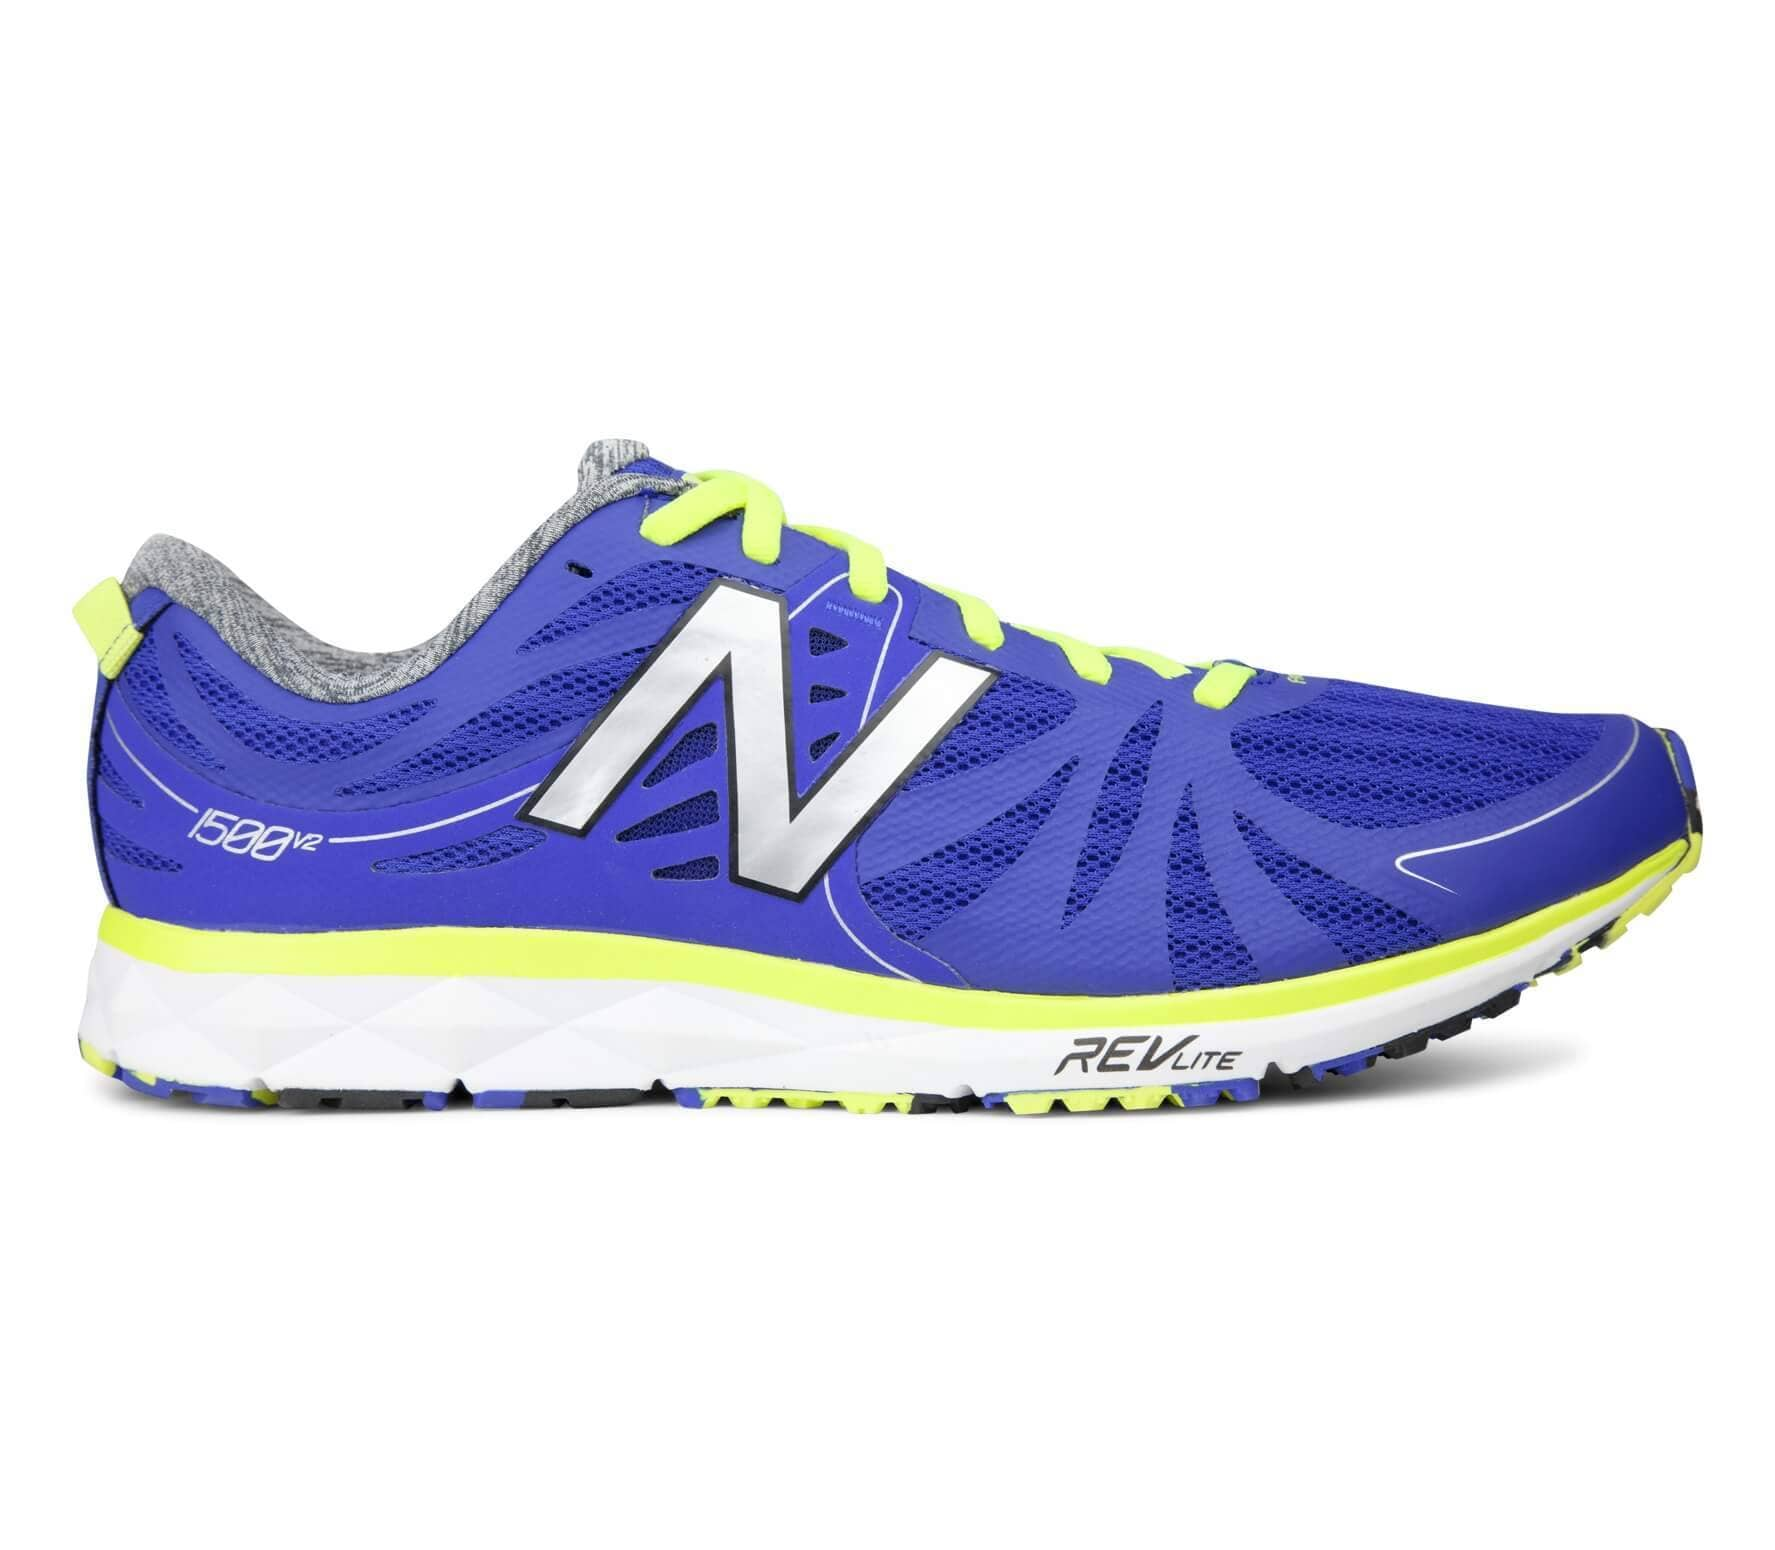 new balance nbx 1500 v2 men 39 s running shoes blue yellow buy it at the keller sports online. Black Bedroom Furniture Sets. Home Design Ideas